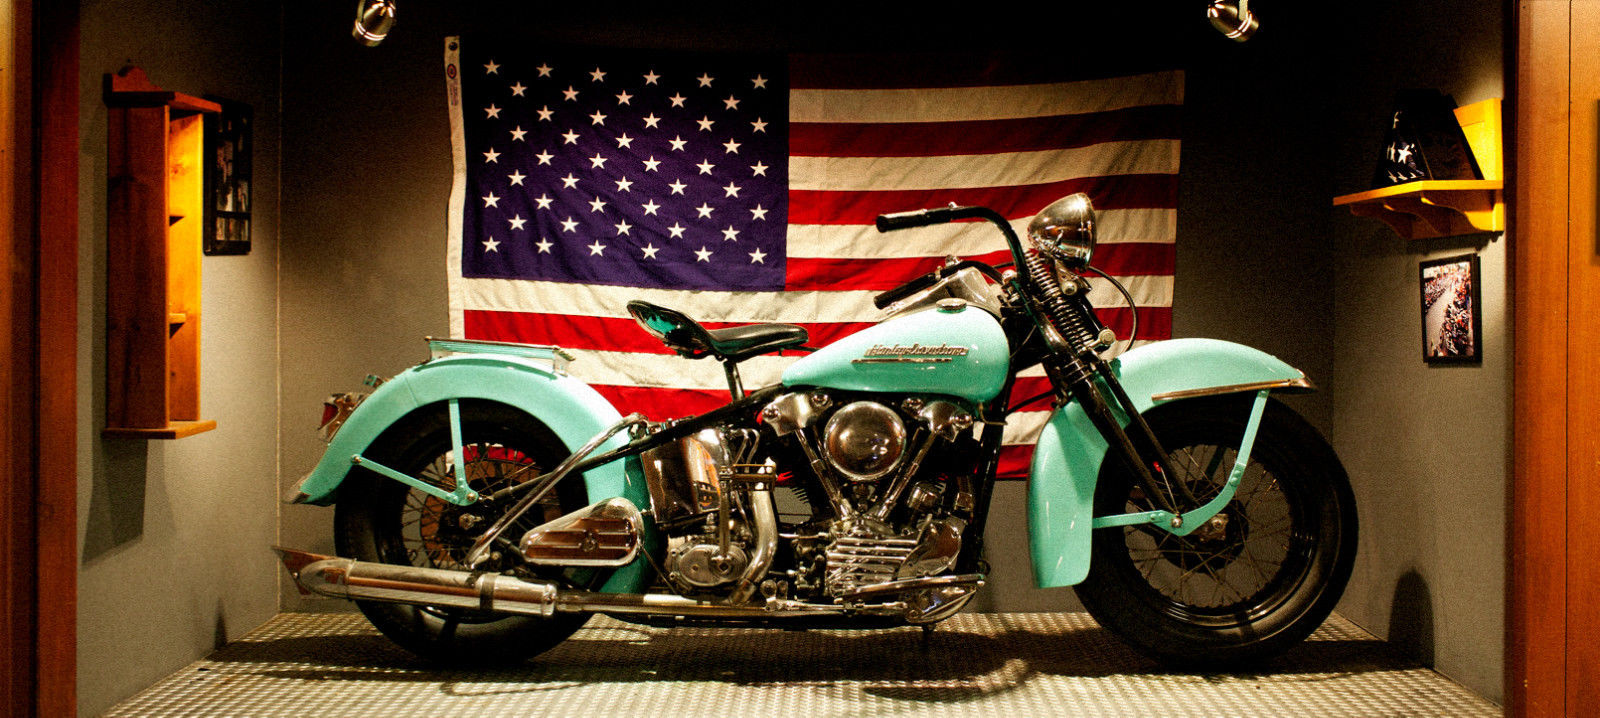 Sons of Anarchy - 1946 Harley Knucklehead - Bike-urious